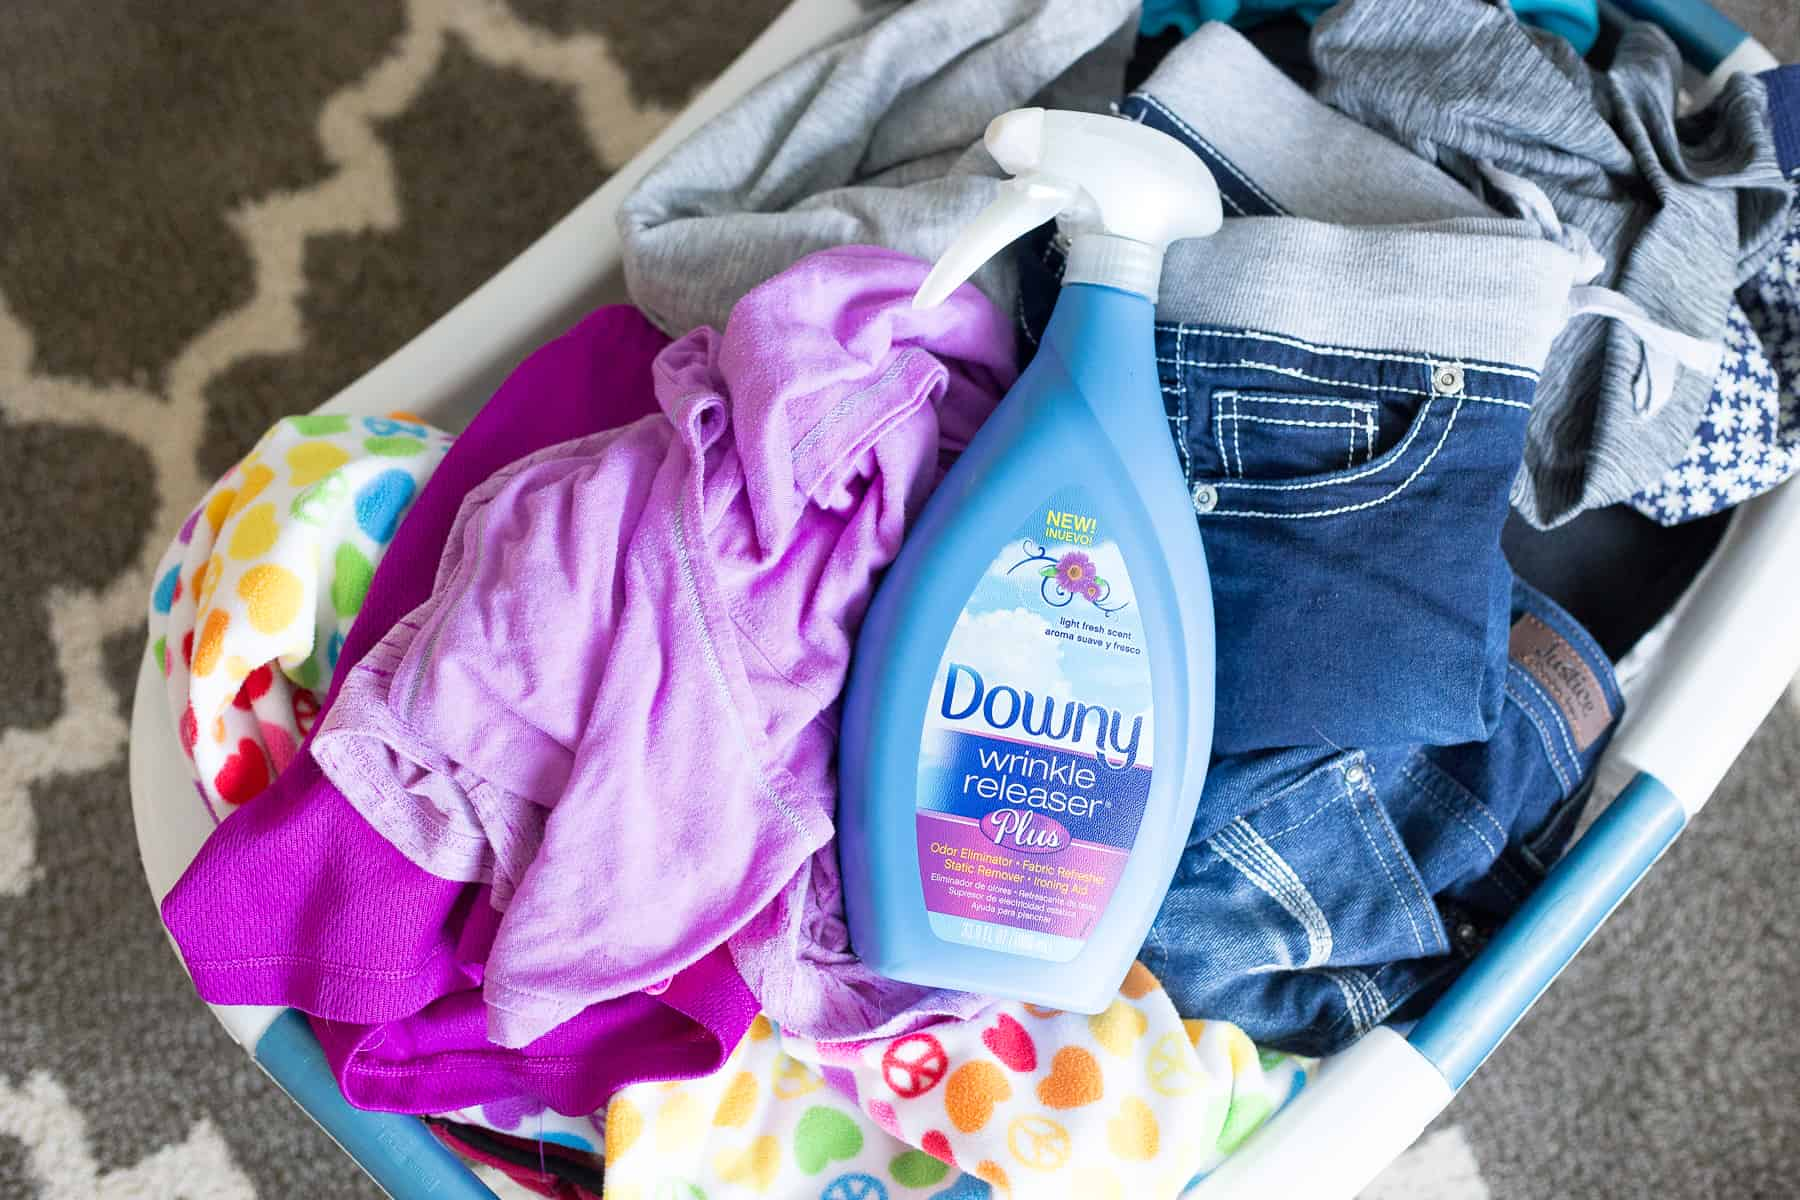 How to Stop Washing Clothes Worn for 32 Minutes